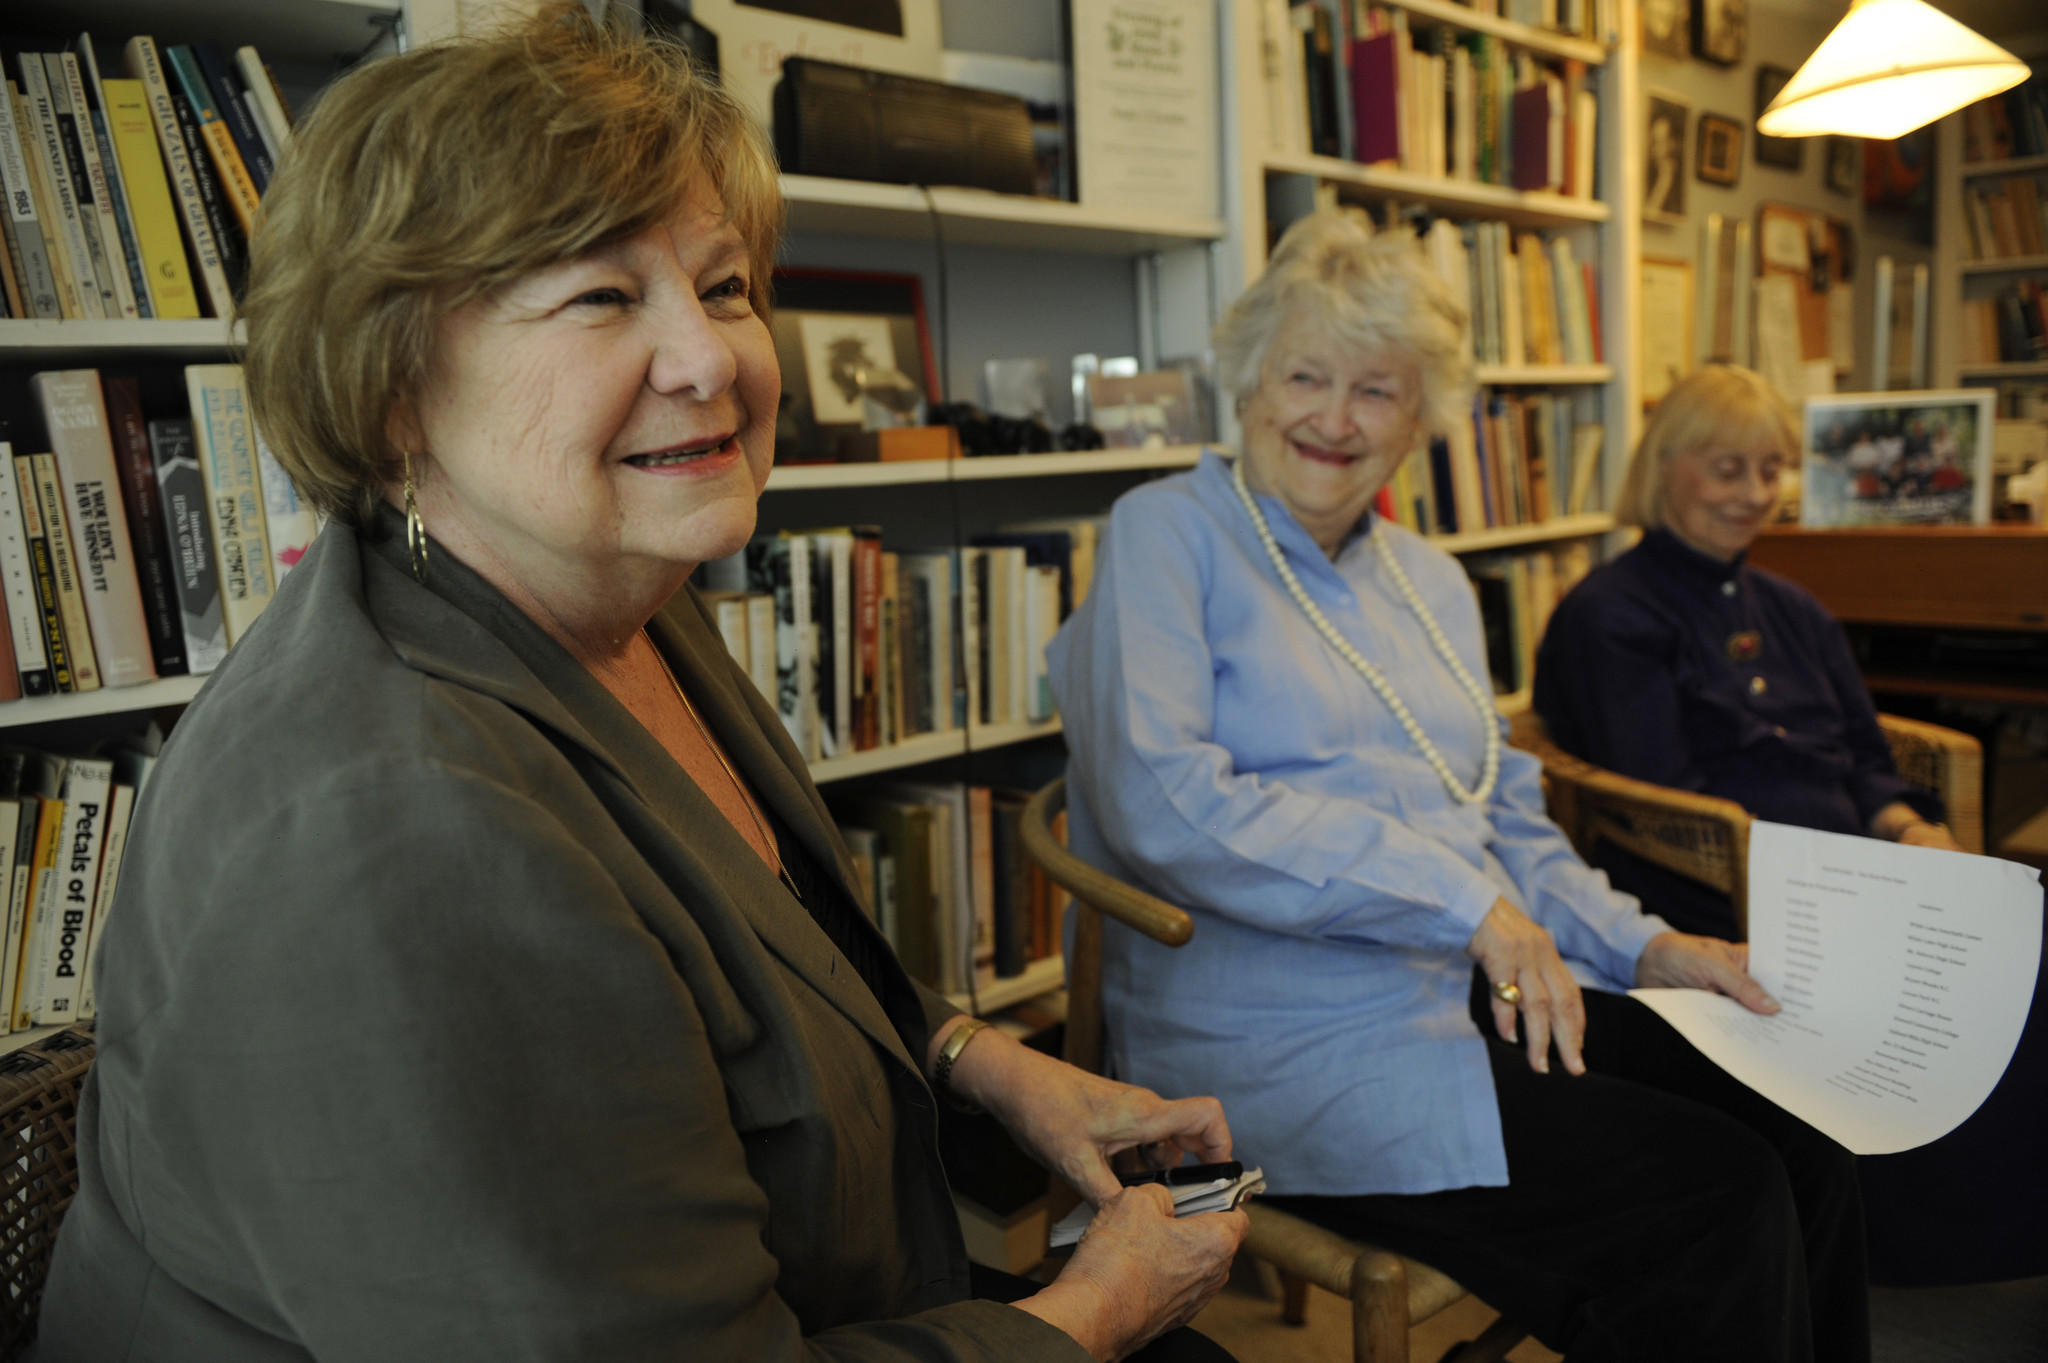 Left to right, Columbia residents Jean Moon, Ellen Conroy Kennedy and Prudence Barry are longtime members of the Howard County Poetry and Literature Society (HoCoPoLitSo). Conroy Kennedy and Barry are two of the women who founded the group in 1974.